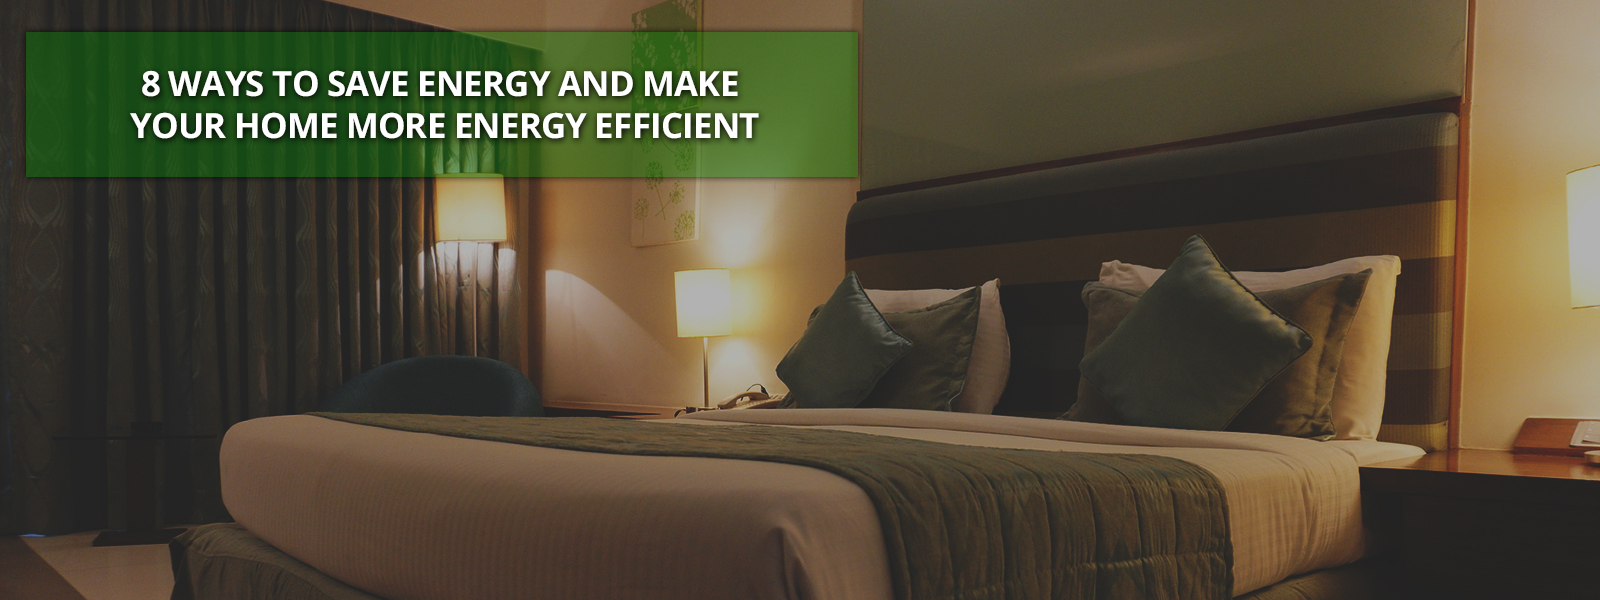 8 Ways to Save Energy and Make Your Home More Energy Efficient